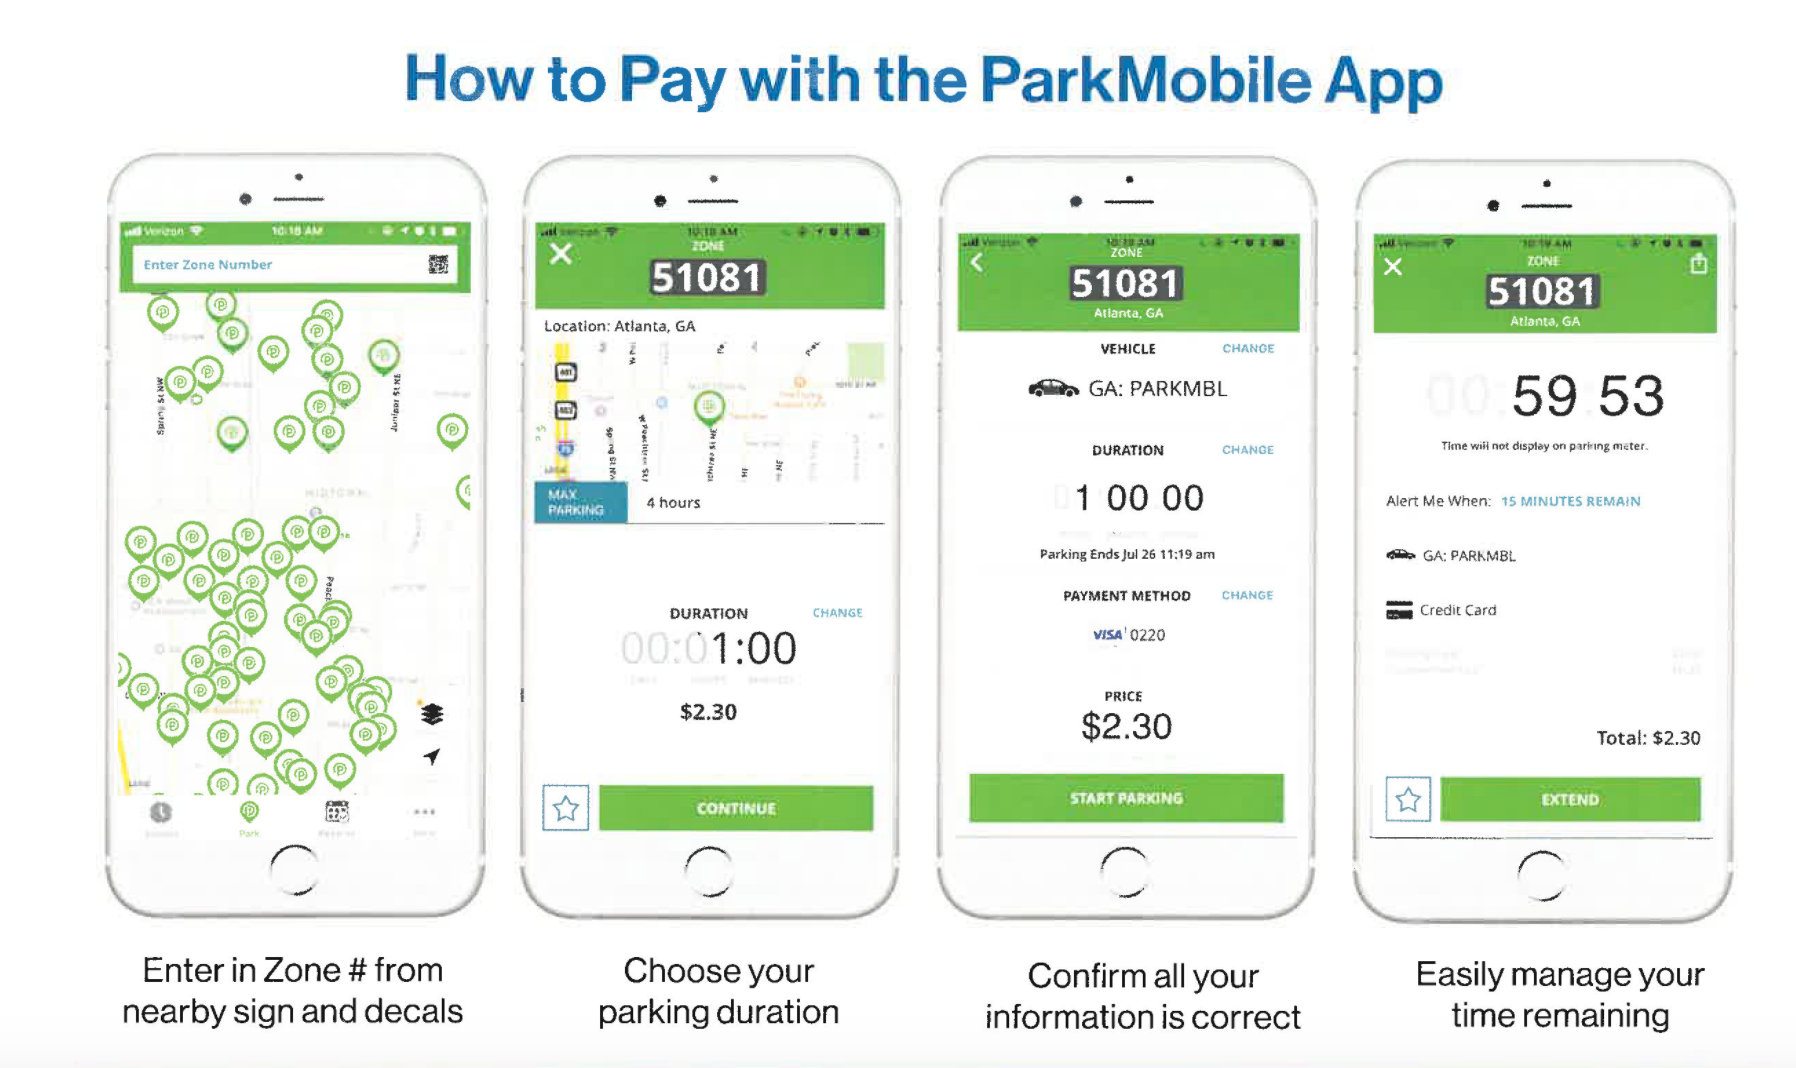 How to Pay with Park Mobile